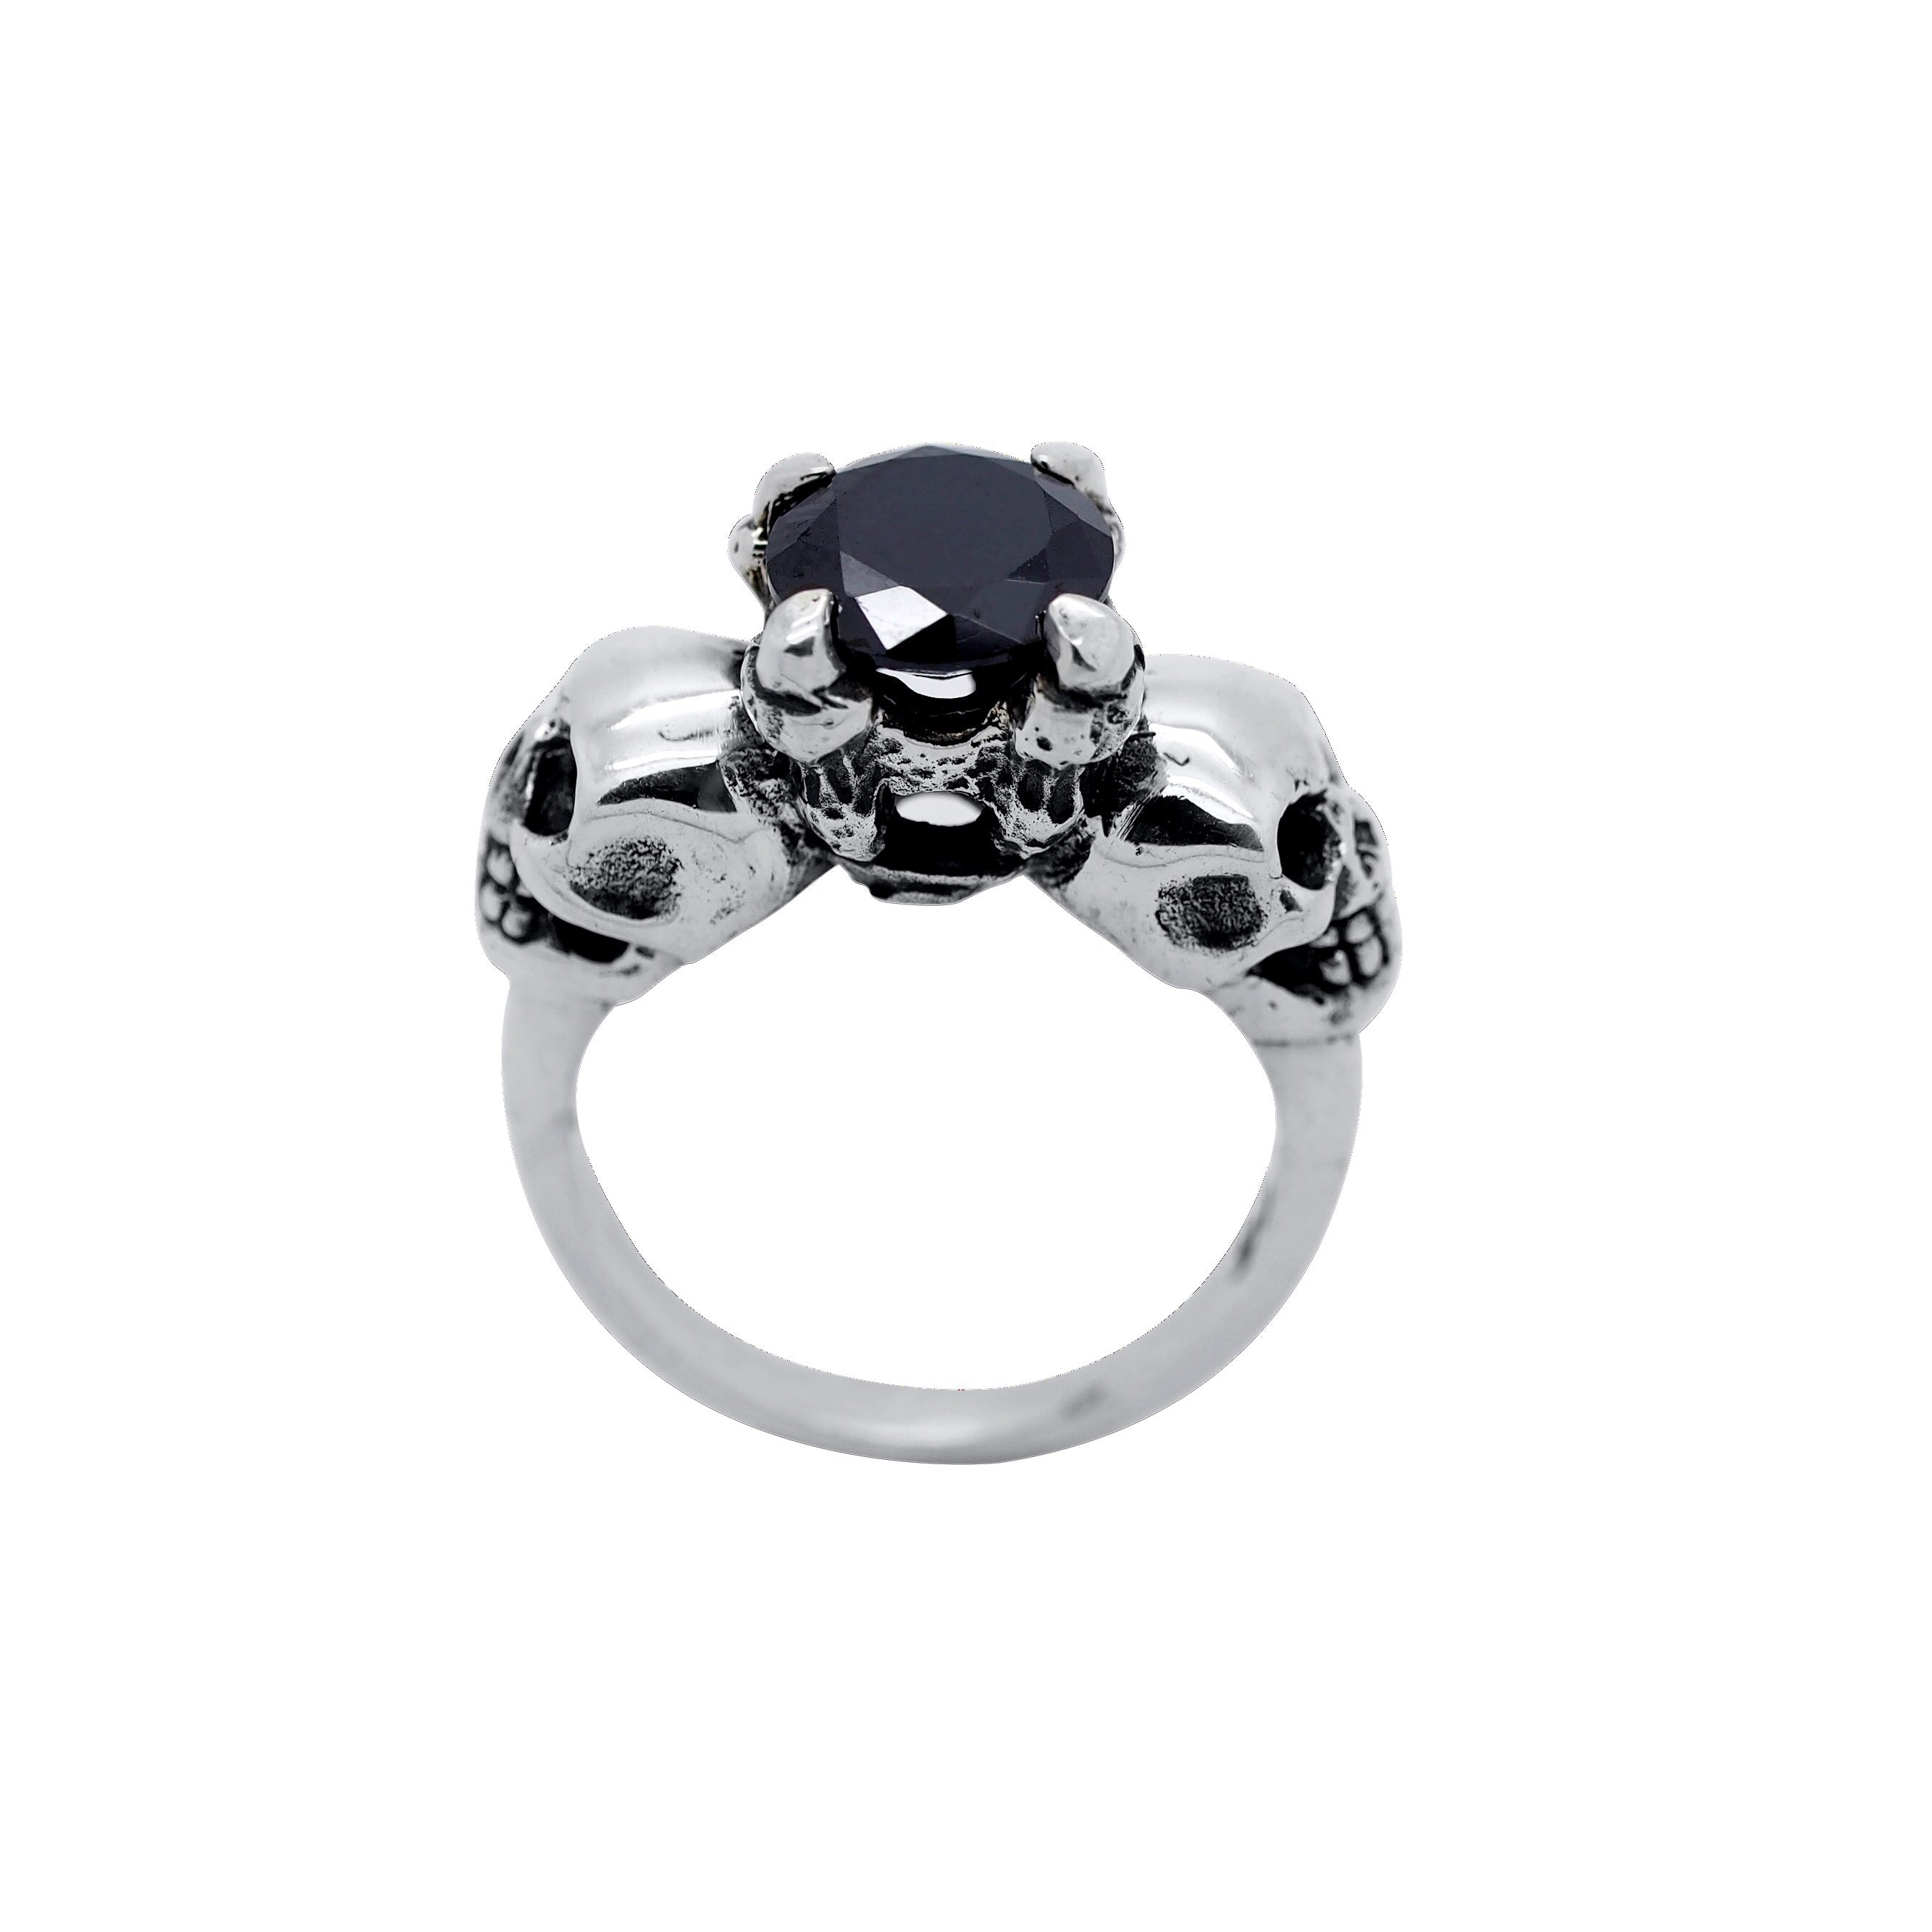 Sterling Silver & Black Onyx 'Till Death' Ring